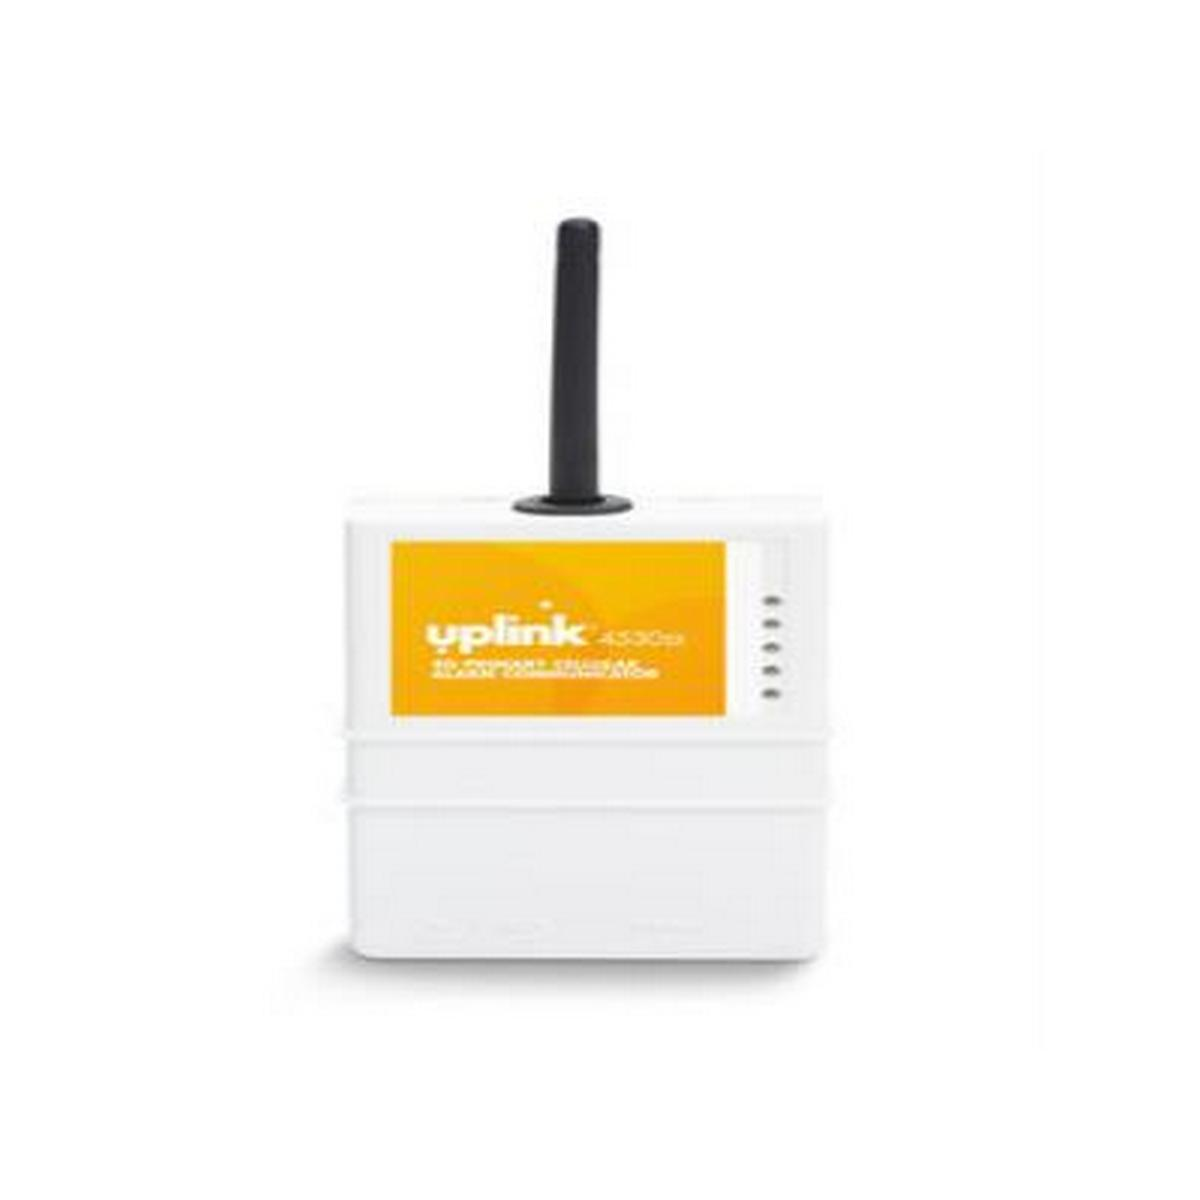 Uplink 4530EX 4G Full data for primary only dial capture for full event reporting